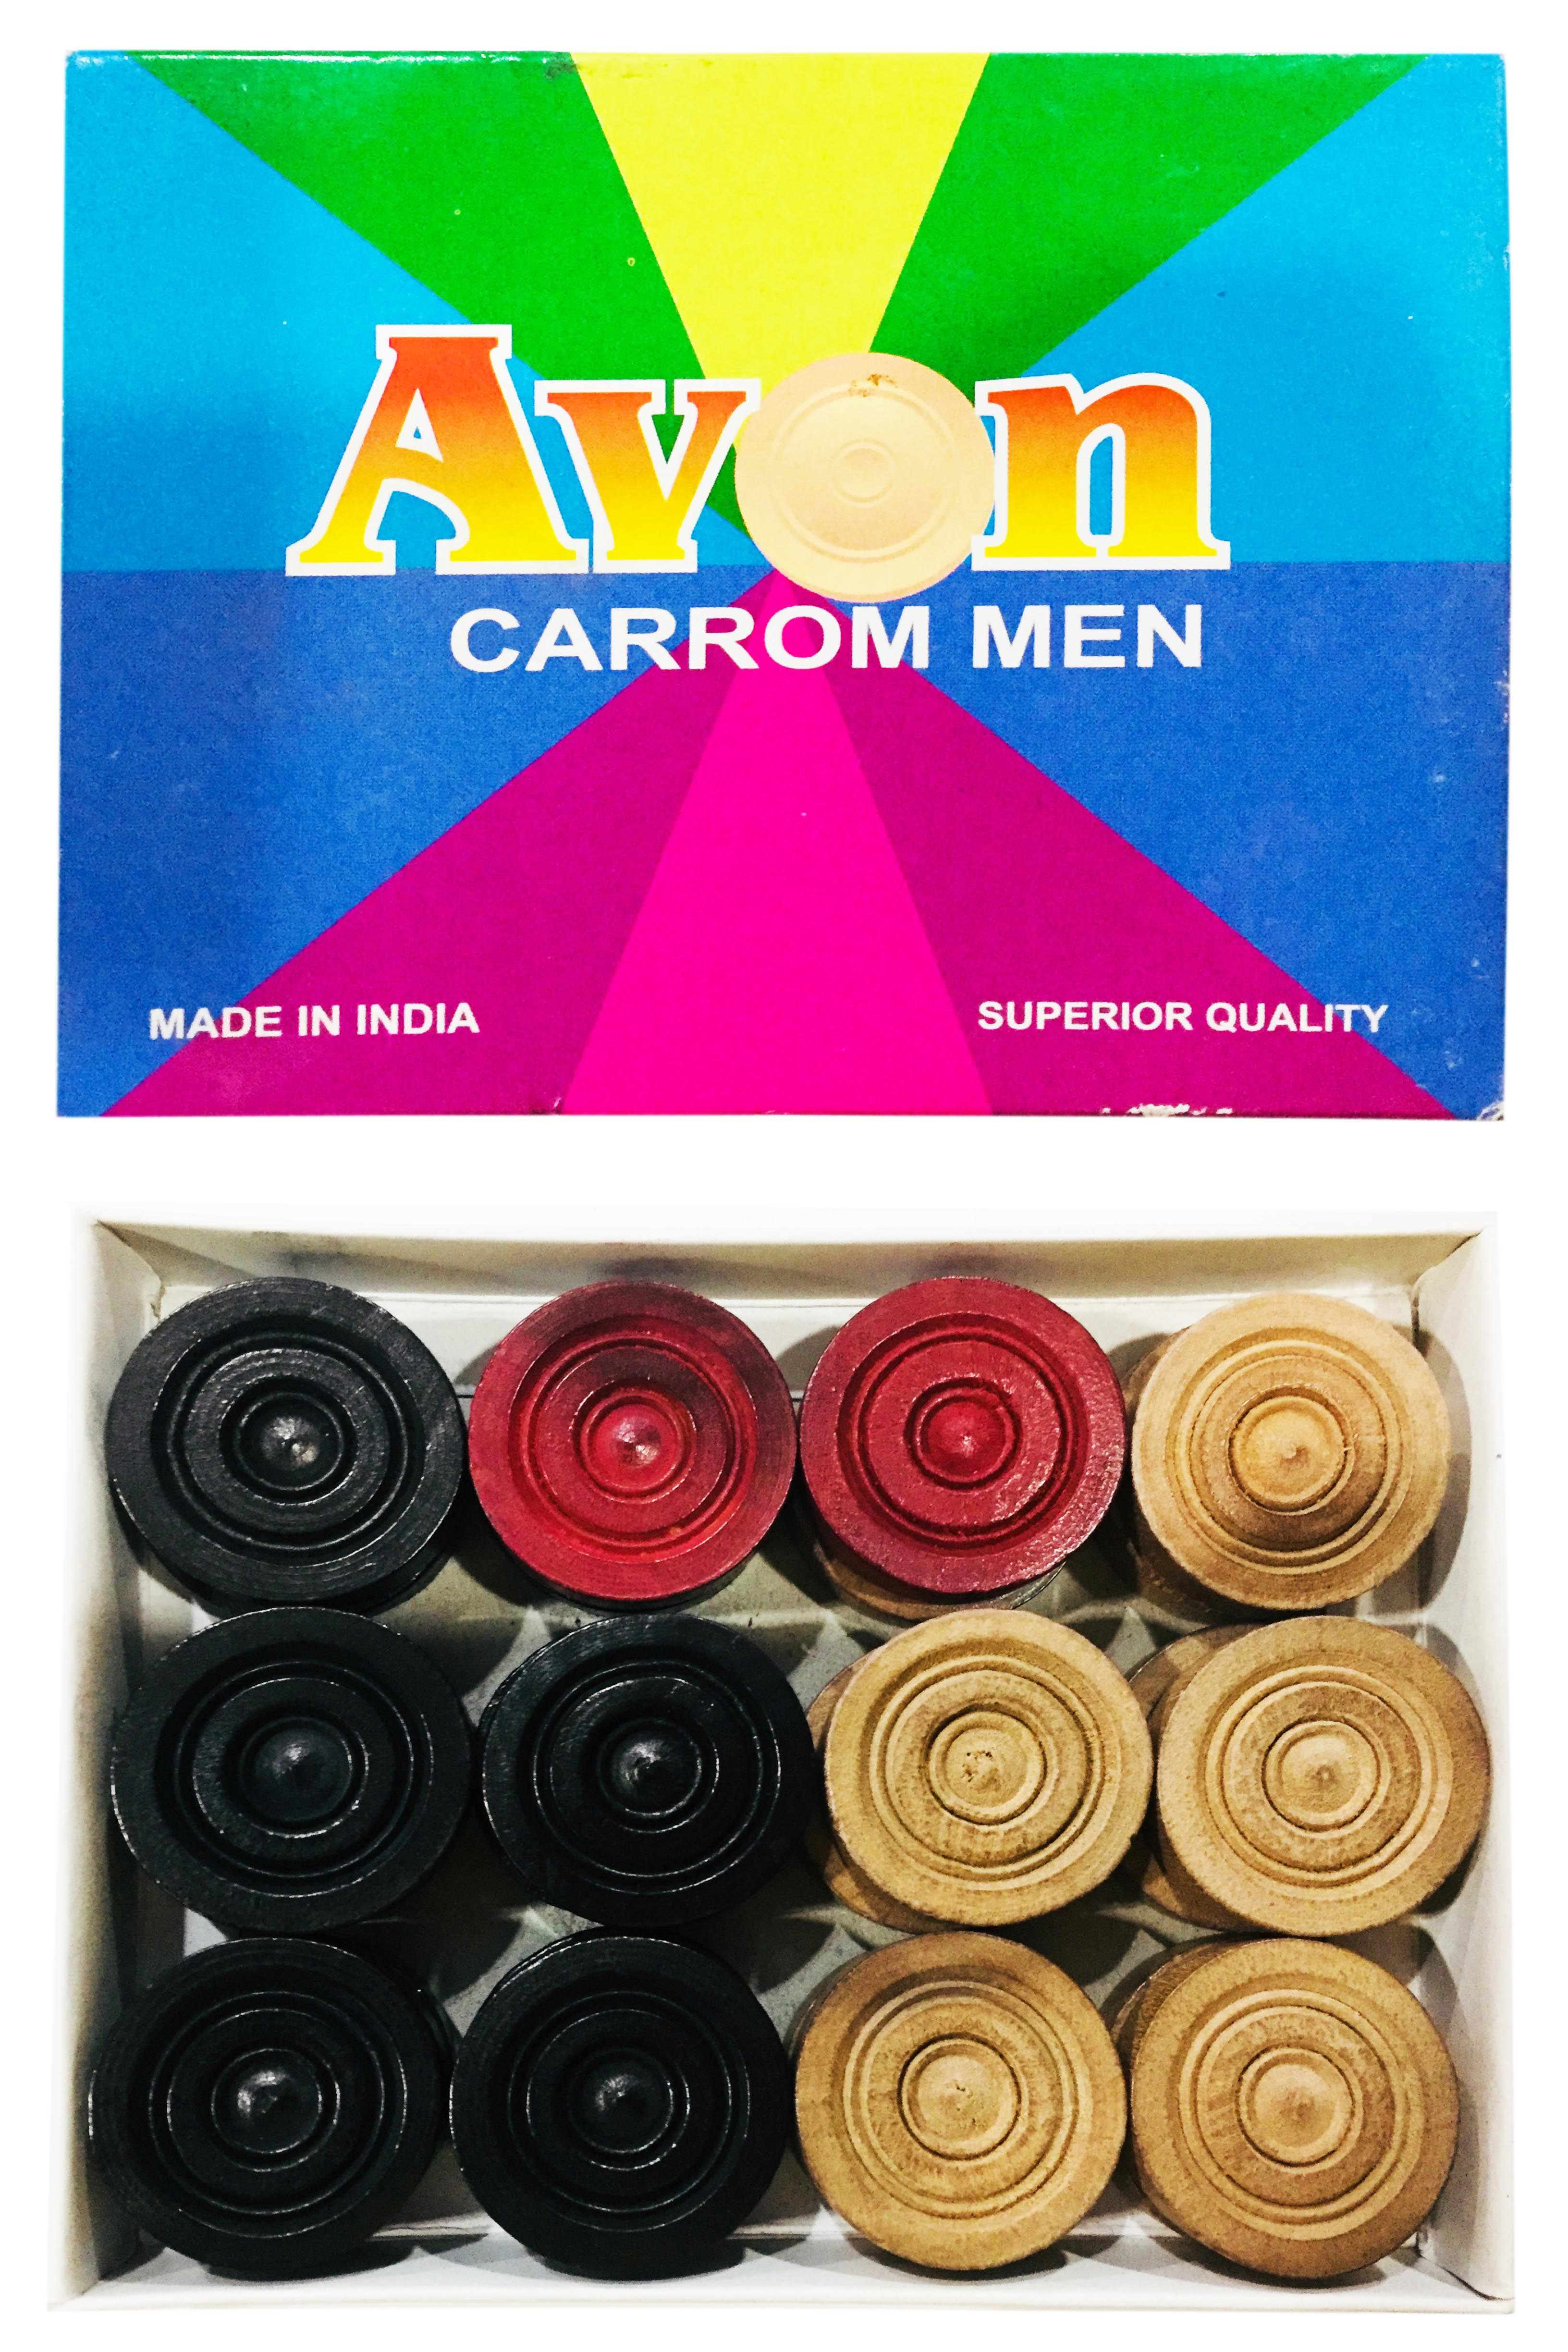 Avon Carrom Men